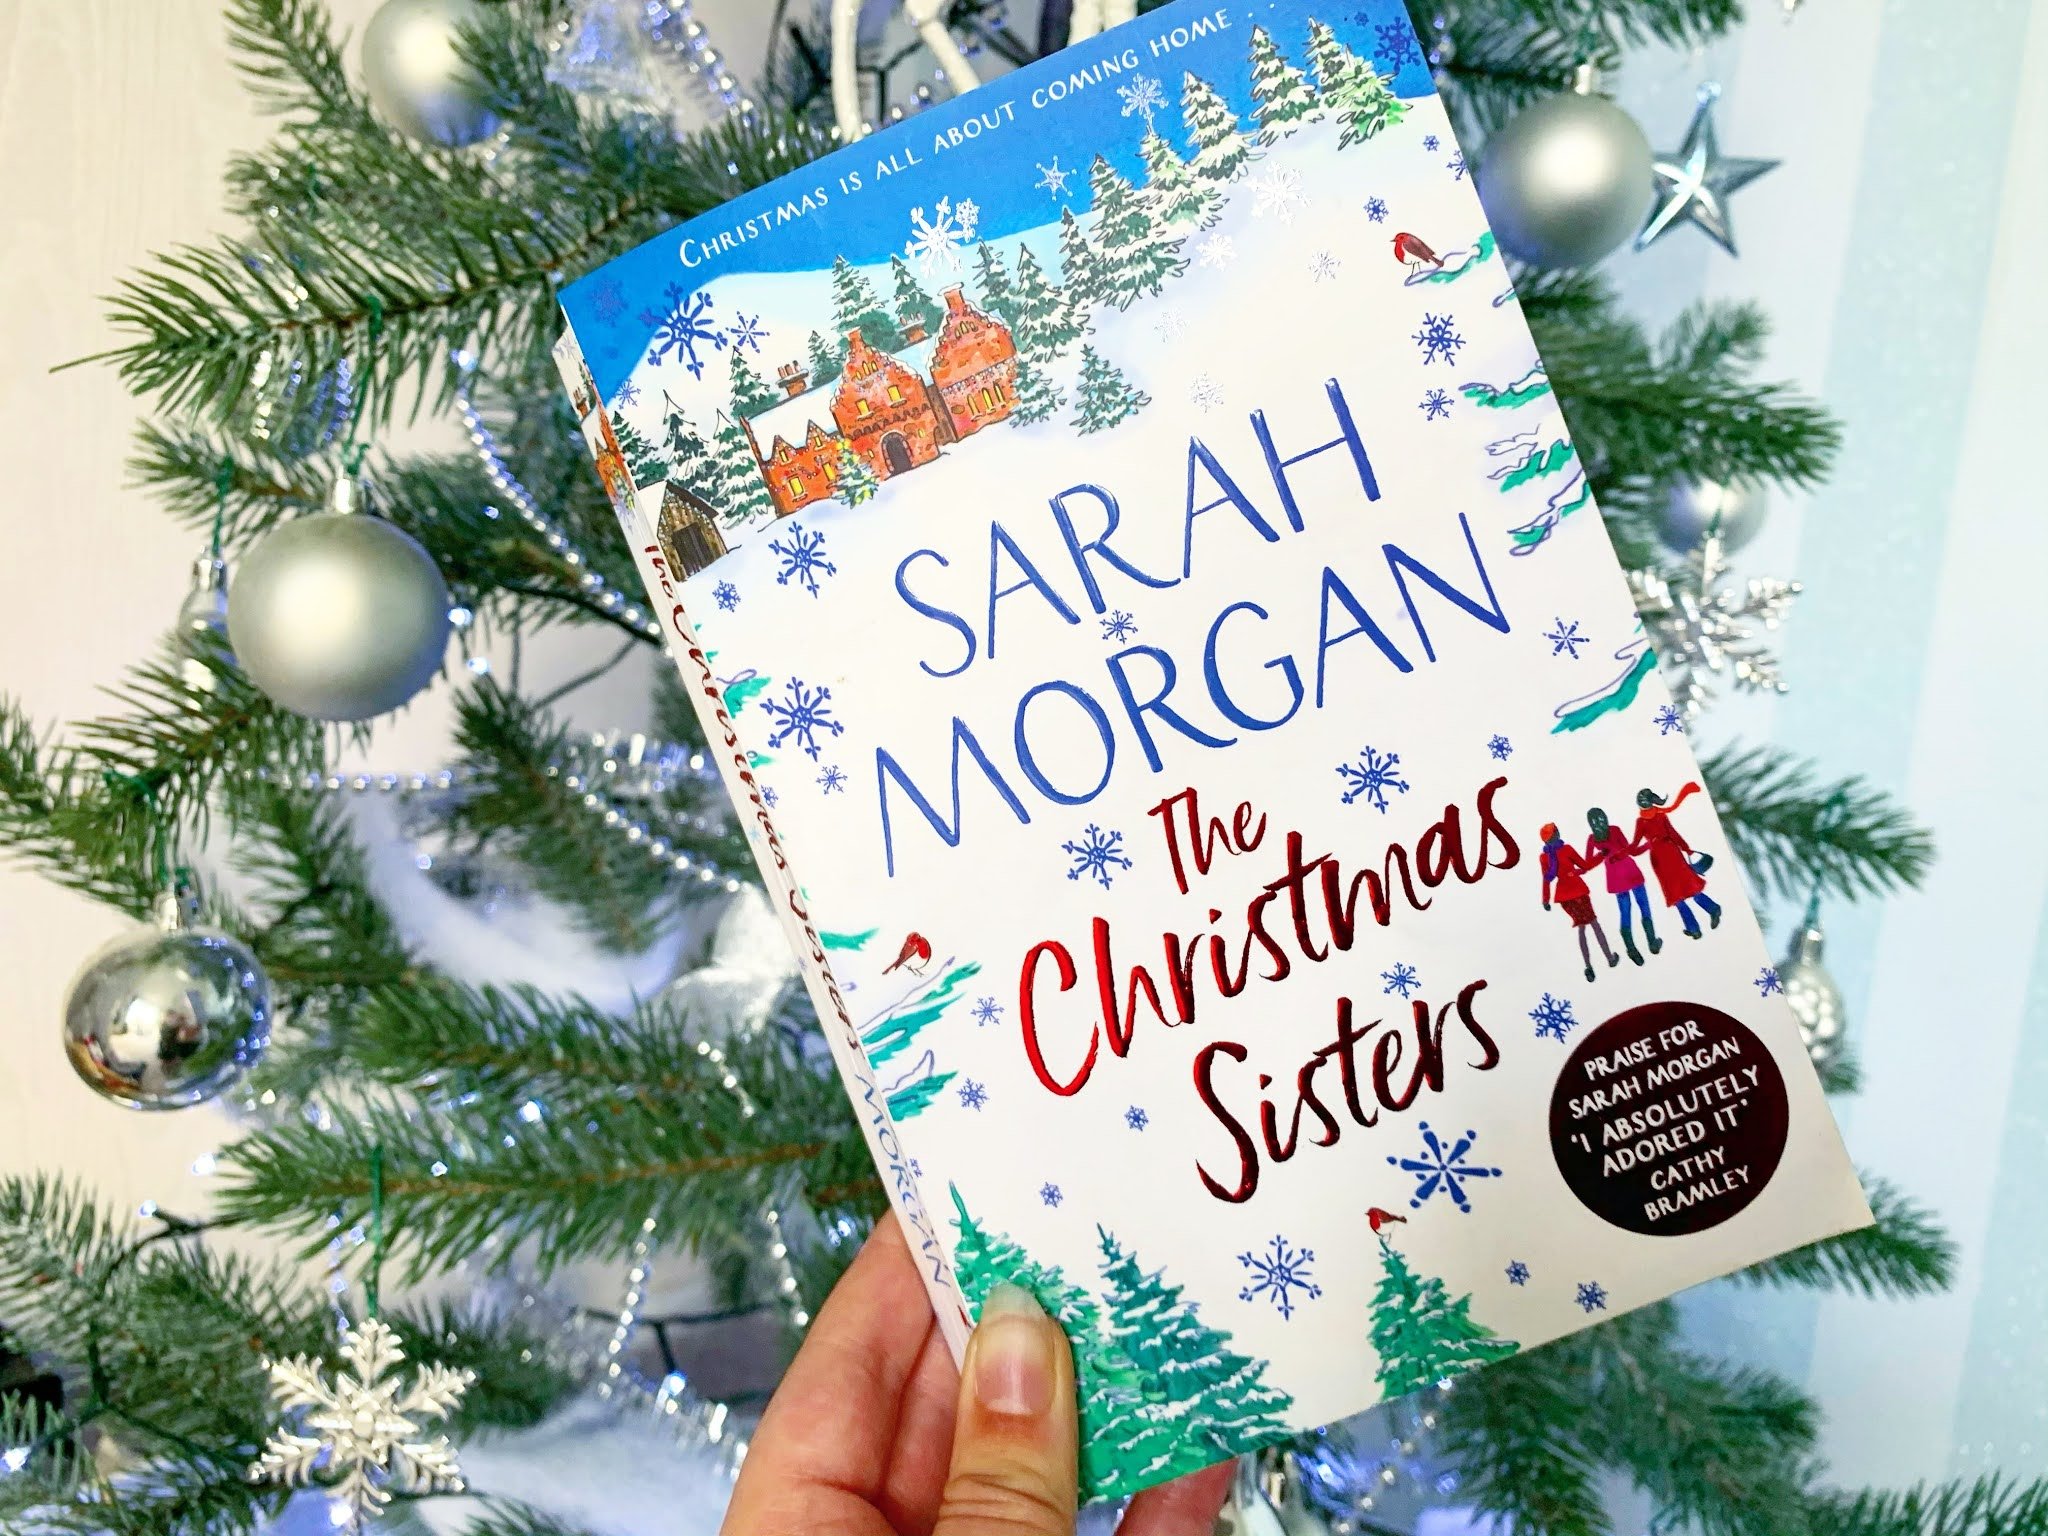 The Christmas Sisters by Sarah Morgan book under the Christmas tree